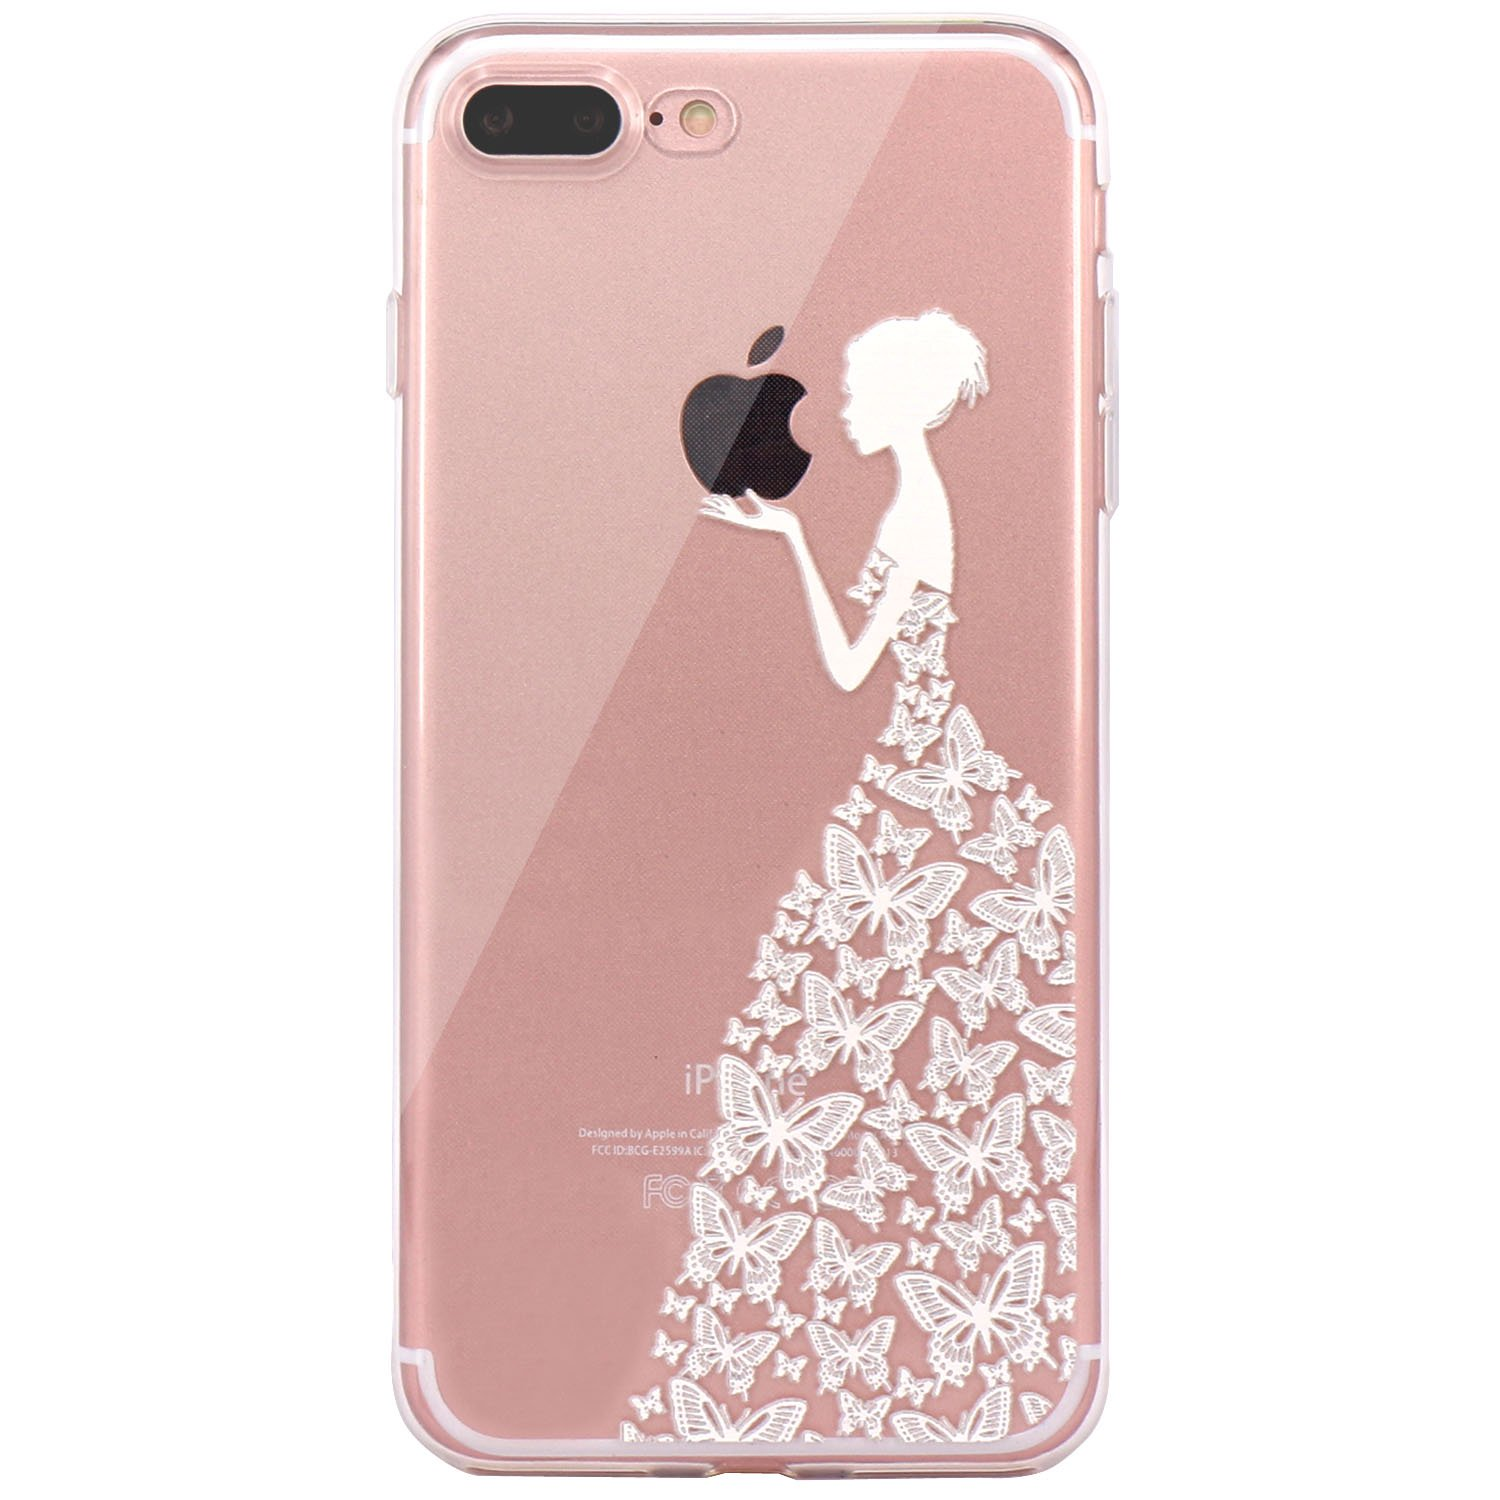 iPhone 6 Case, JAHOLAN Amusing Whimsical Design Clear Bumper TPU Soft Case Rubber Silicone Skin Cover for iPhone 6 6S - White Beautiful Butterfly Girl 4335001063